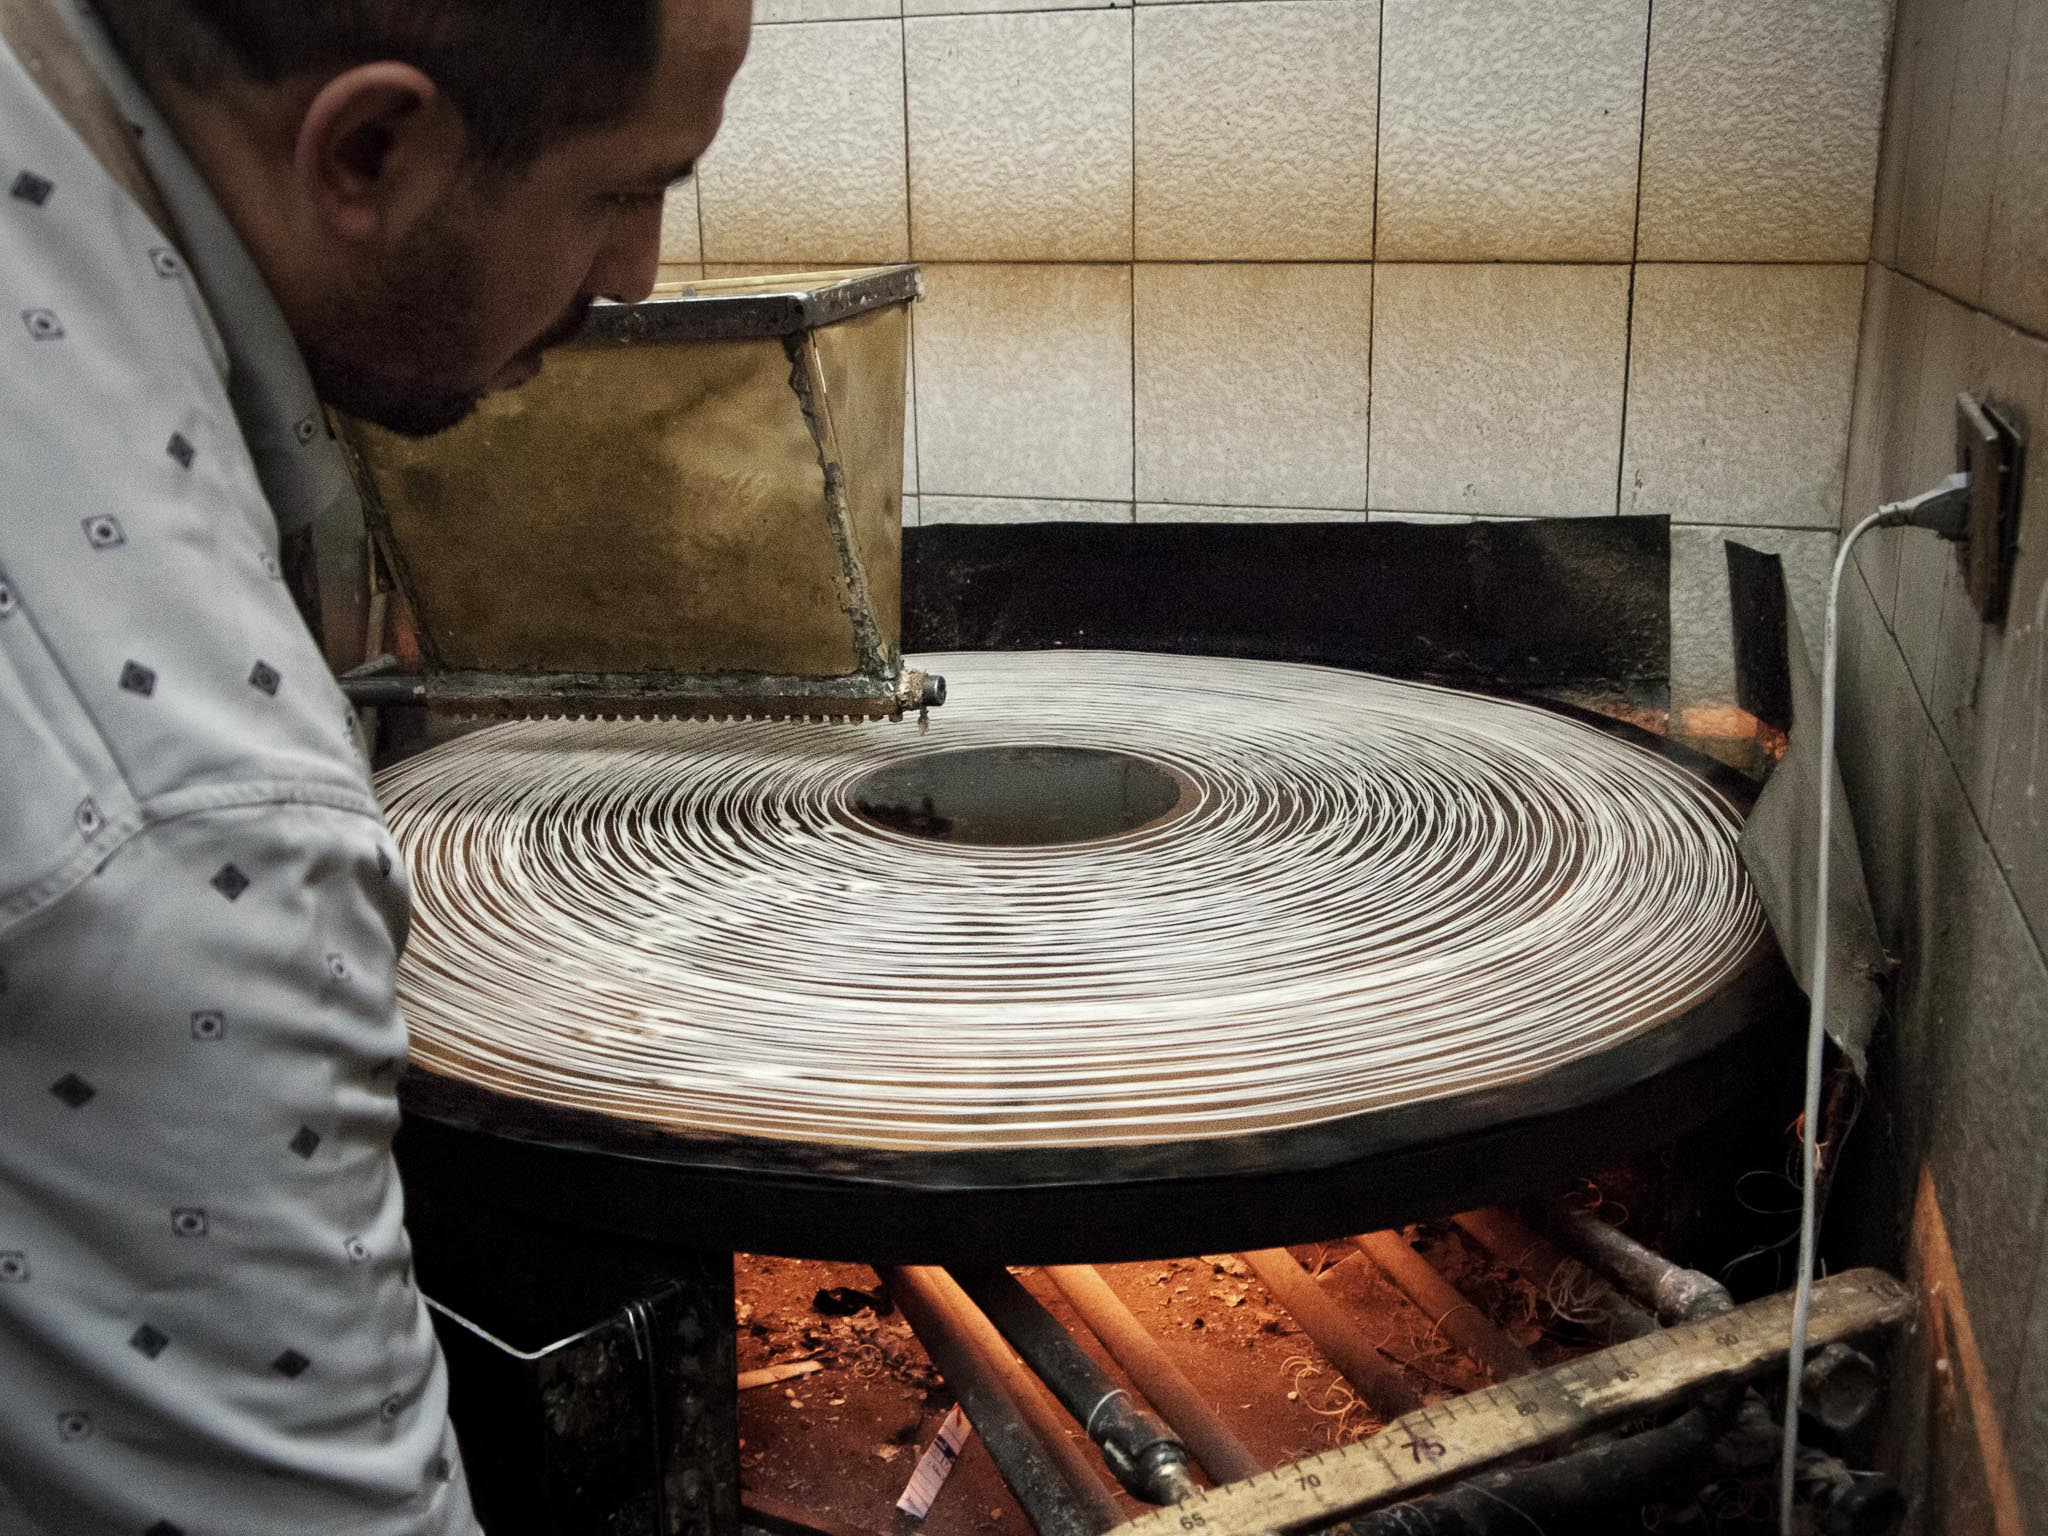 Ever wondered how the stringy bits in baklava is made? A runny dough is pored into the triangular container, which has a series of small holes at the bottom. The dough drops onto a rotating, hot steel plate. Once finished, the baker gathers the baked strings to place onto trays where the rest of the various ingredients are layered (Aleppo).